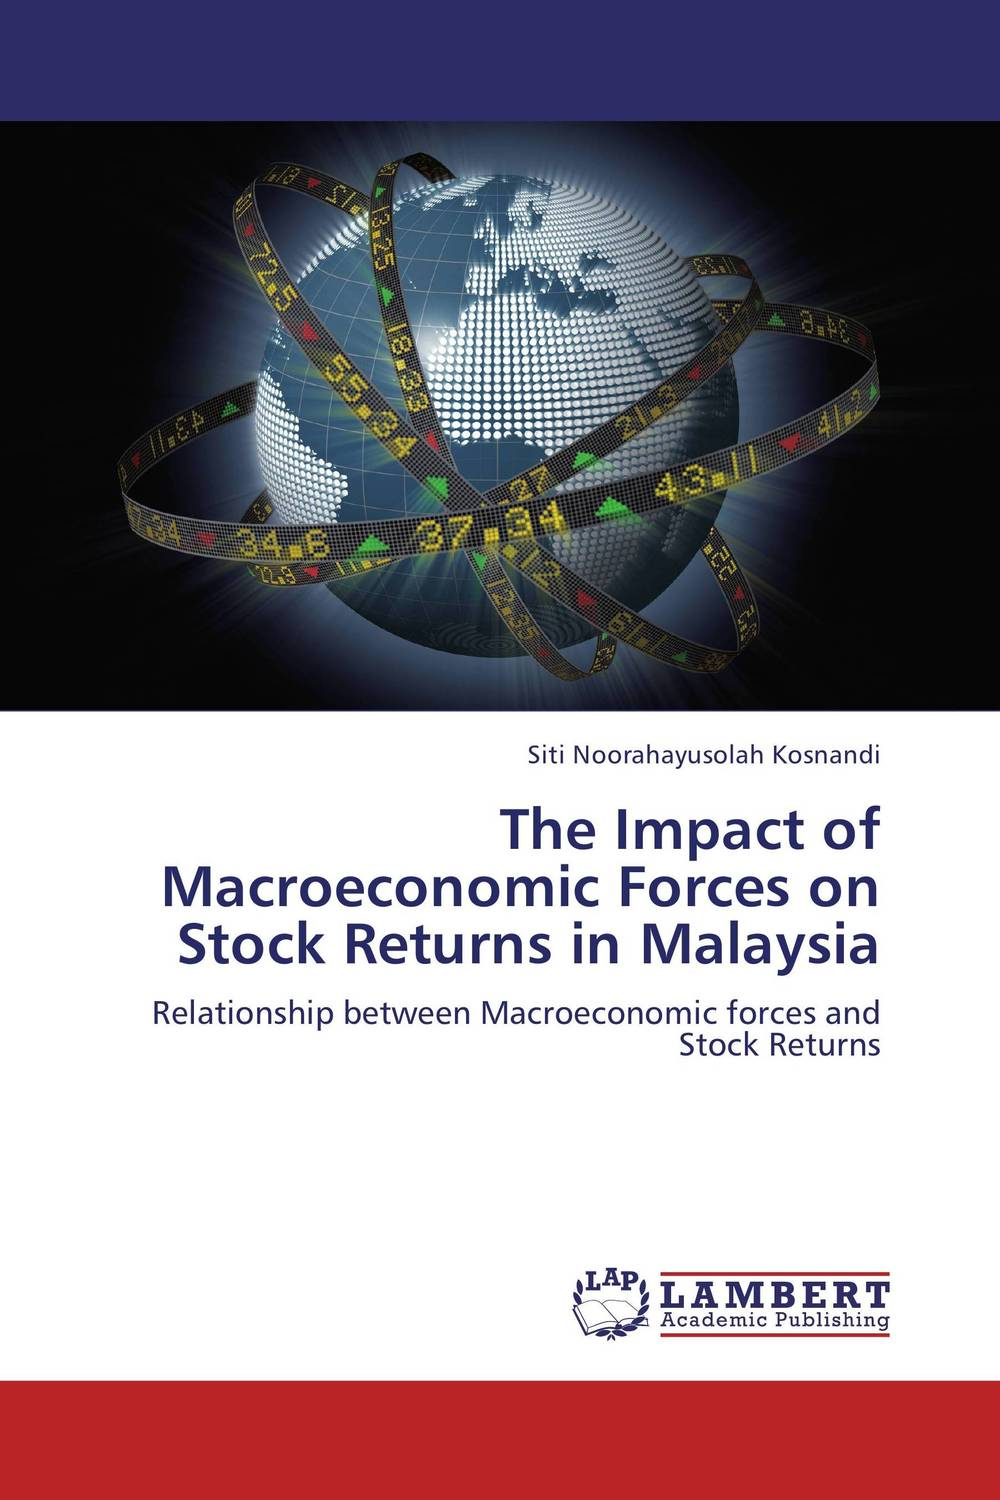 The Impact of Macroeconomic Forces on Stock Returns in Malaysia impact of stock market performance indices on economic growth